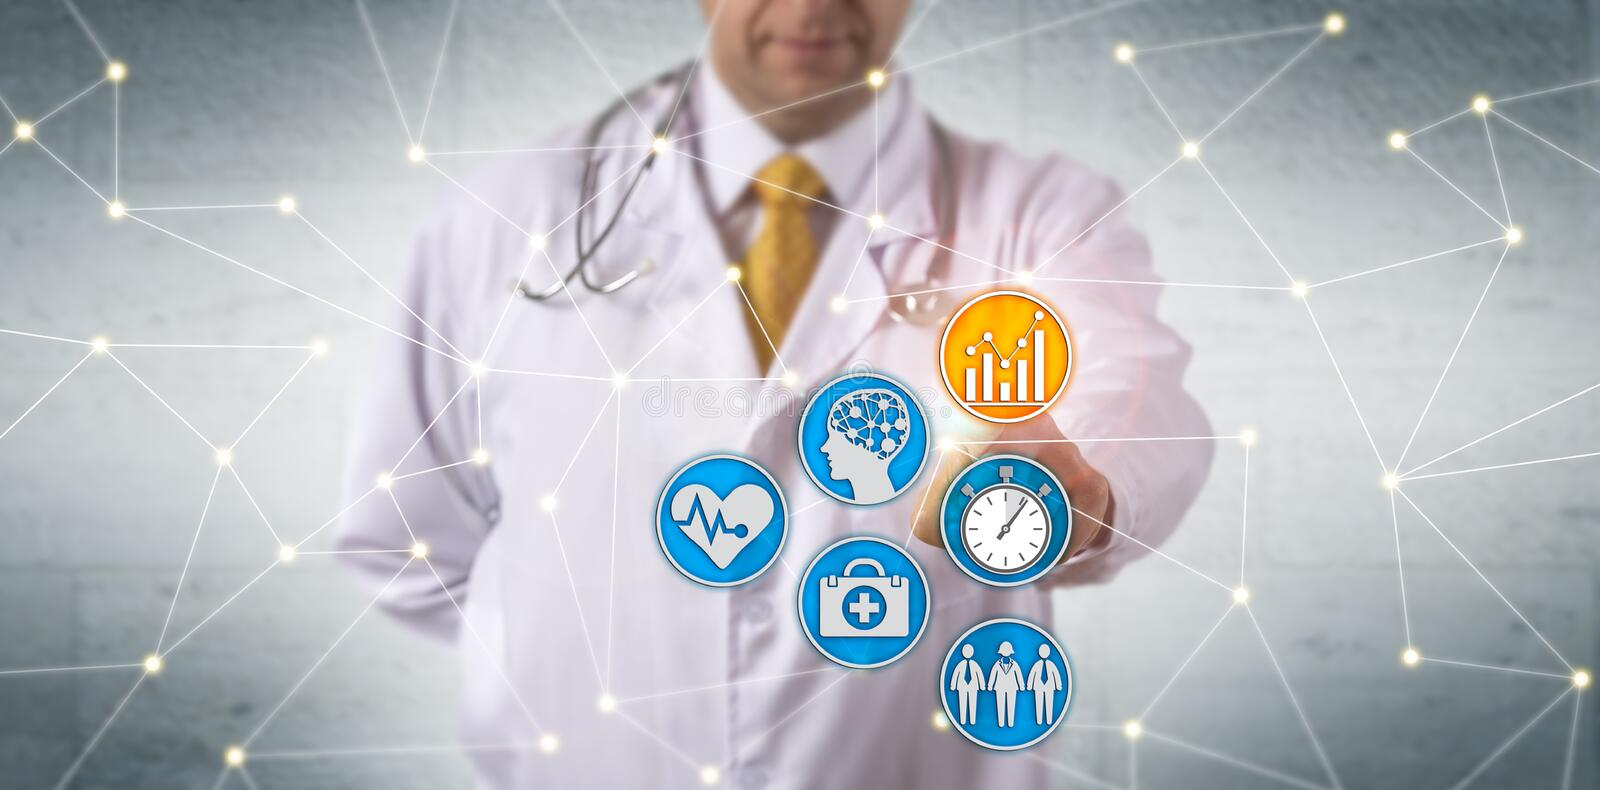 Doctor Activating Predictive Analytics In Network stock photo